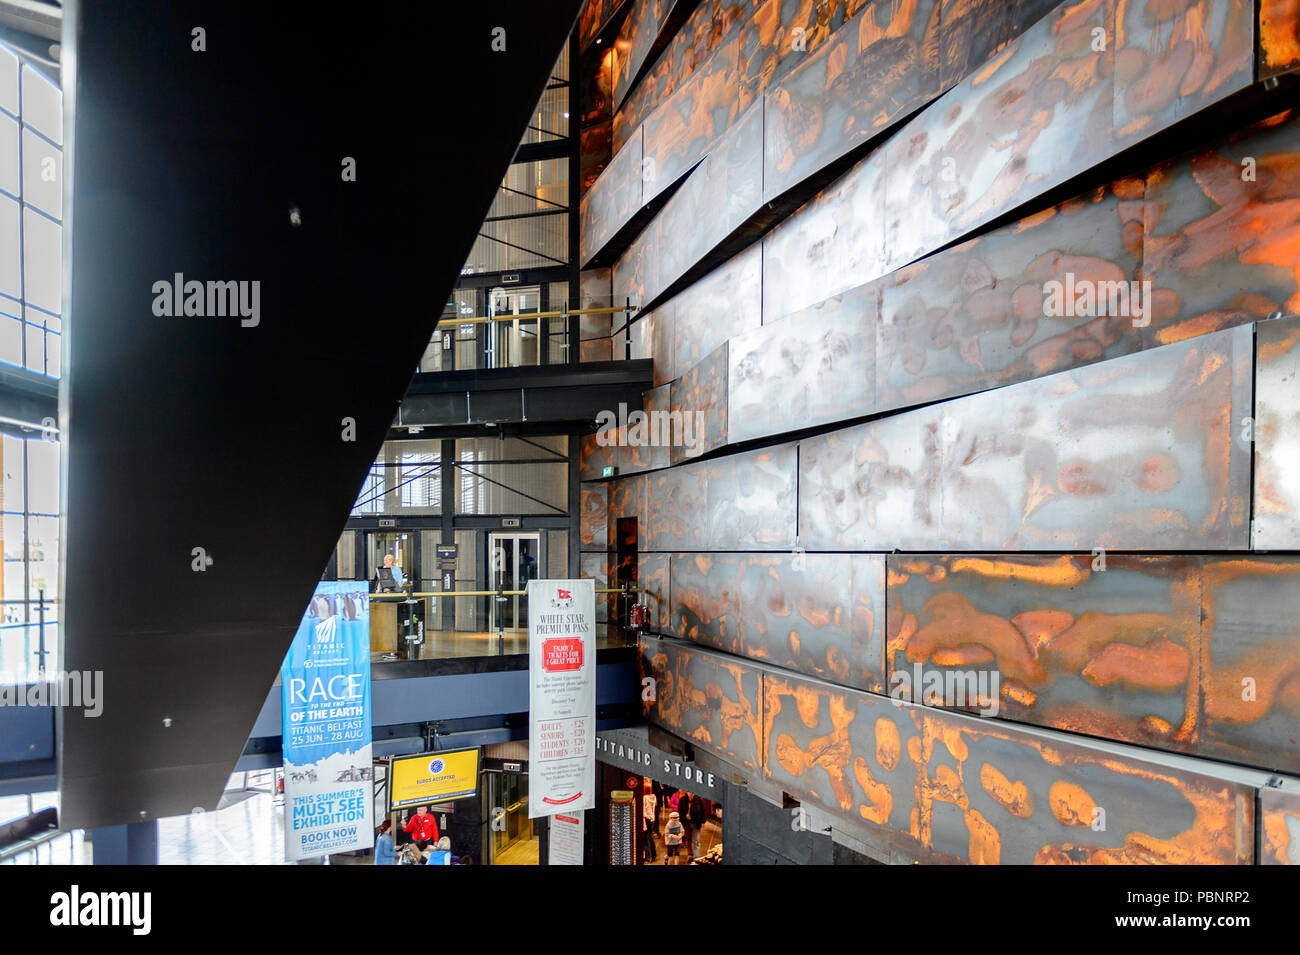 BELFAST, NI - JULY 14, 2016: Interior of the Titanic Belfast, visitor attraction dedicated to the RMS Tinanic, a ship whic sank by hitting an iceberg  - Stock Image